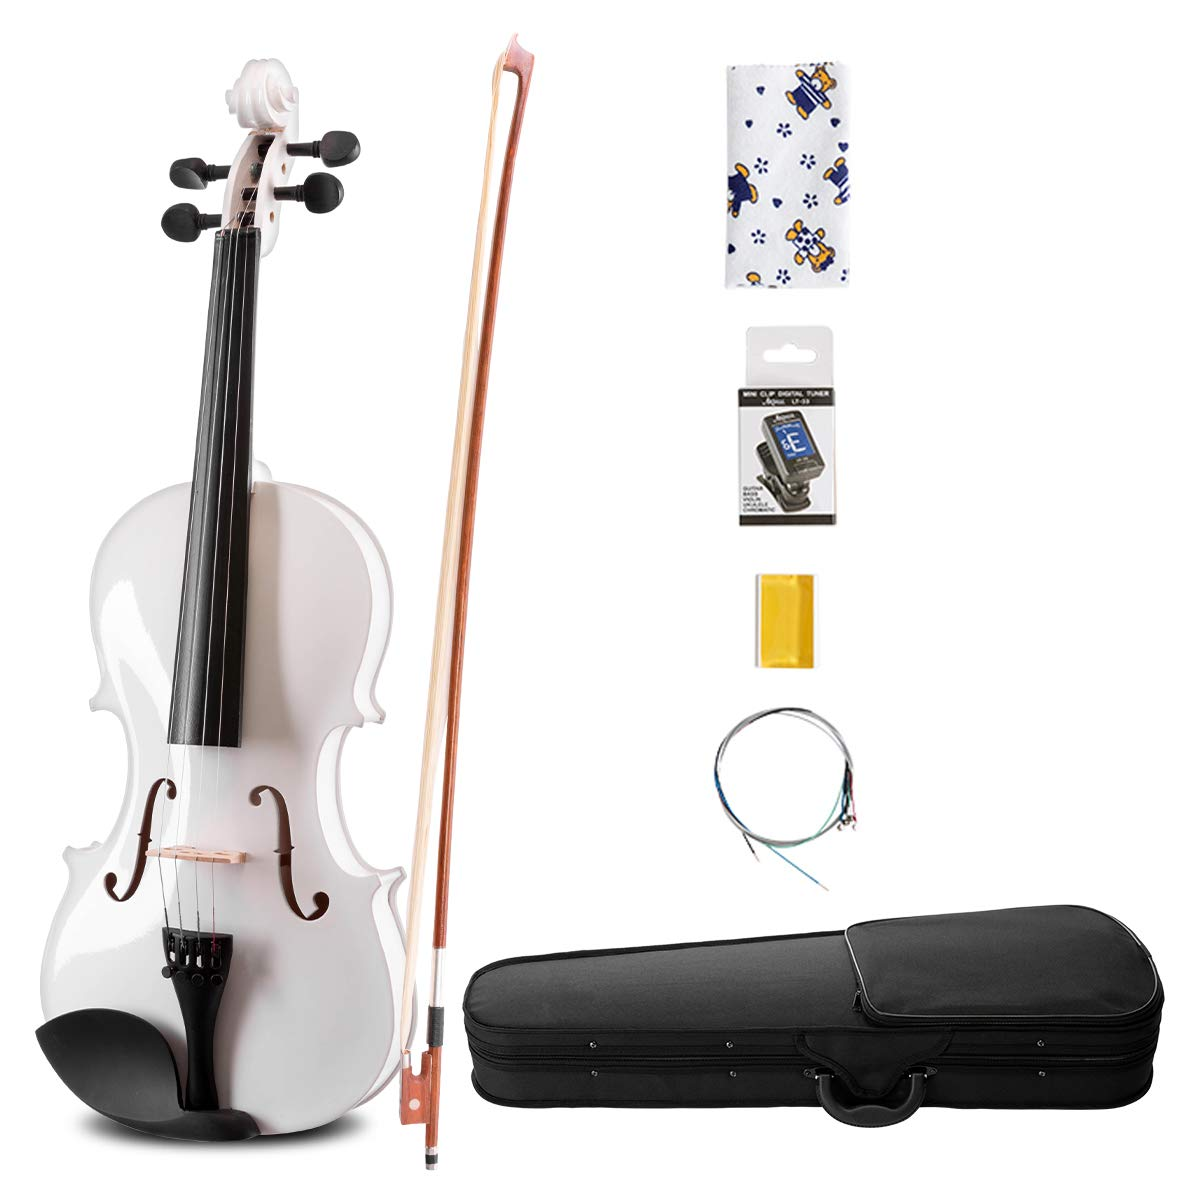 ARTALL 4/4 Handmade Student Acoustic Violin Beginner Pack with Bow, Hard Case, Chin Rest, Tuner, Spare Strings, Rosin and Bridge, Glossy White by ARTALL (Image #1)